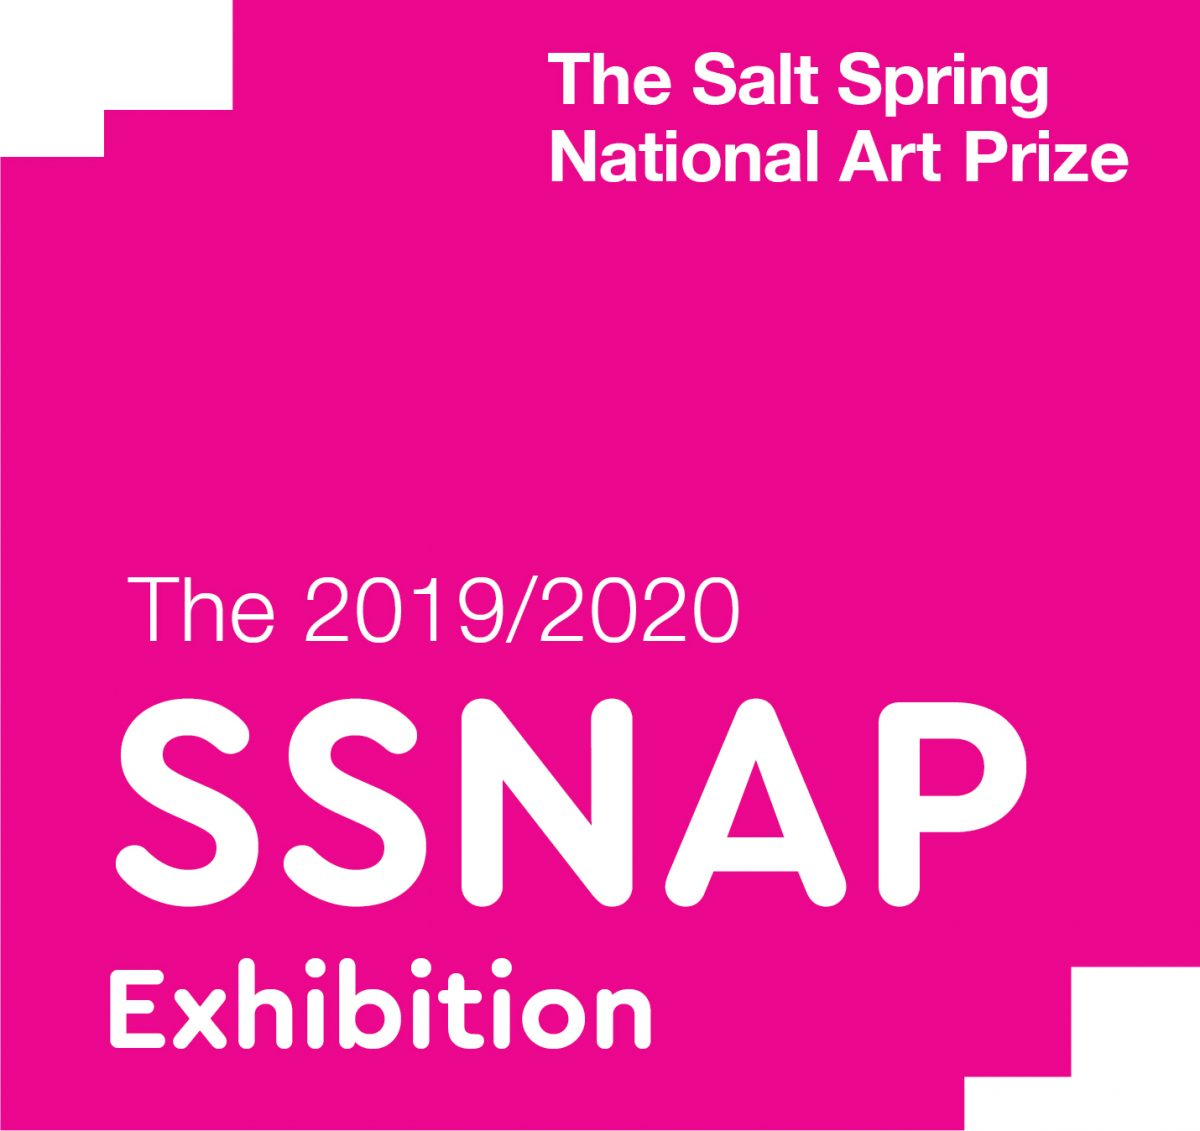 SSNAP is back! Call for submissions open January 10, 2019